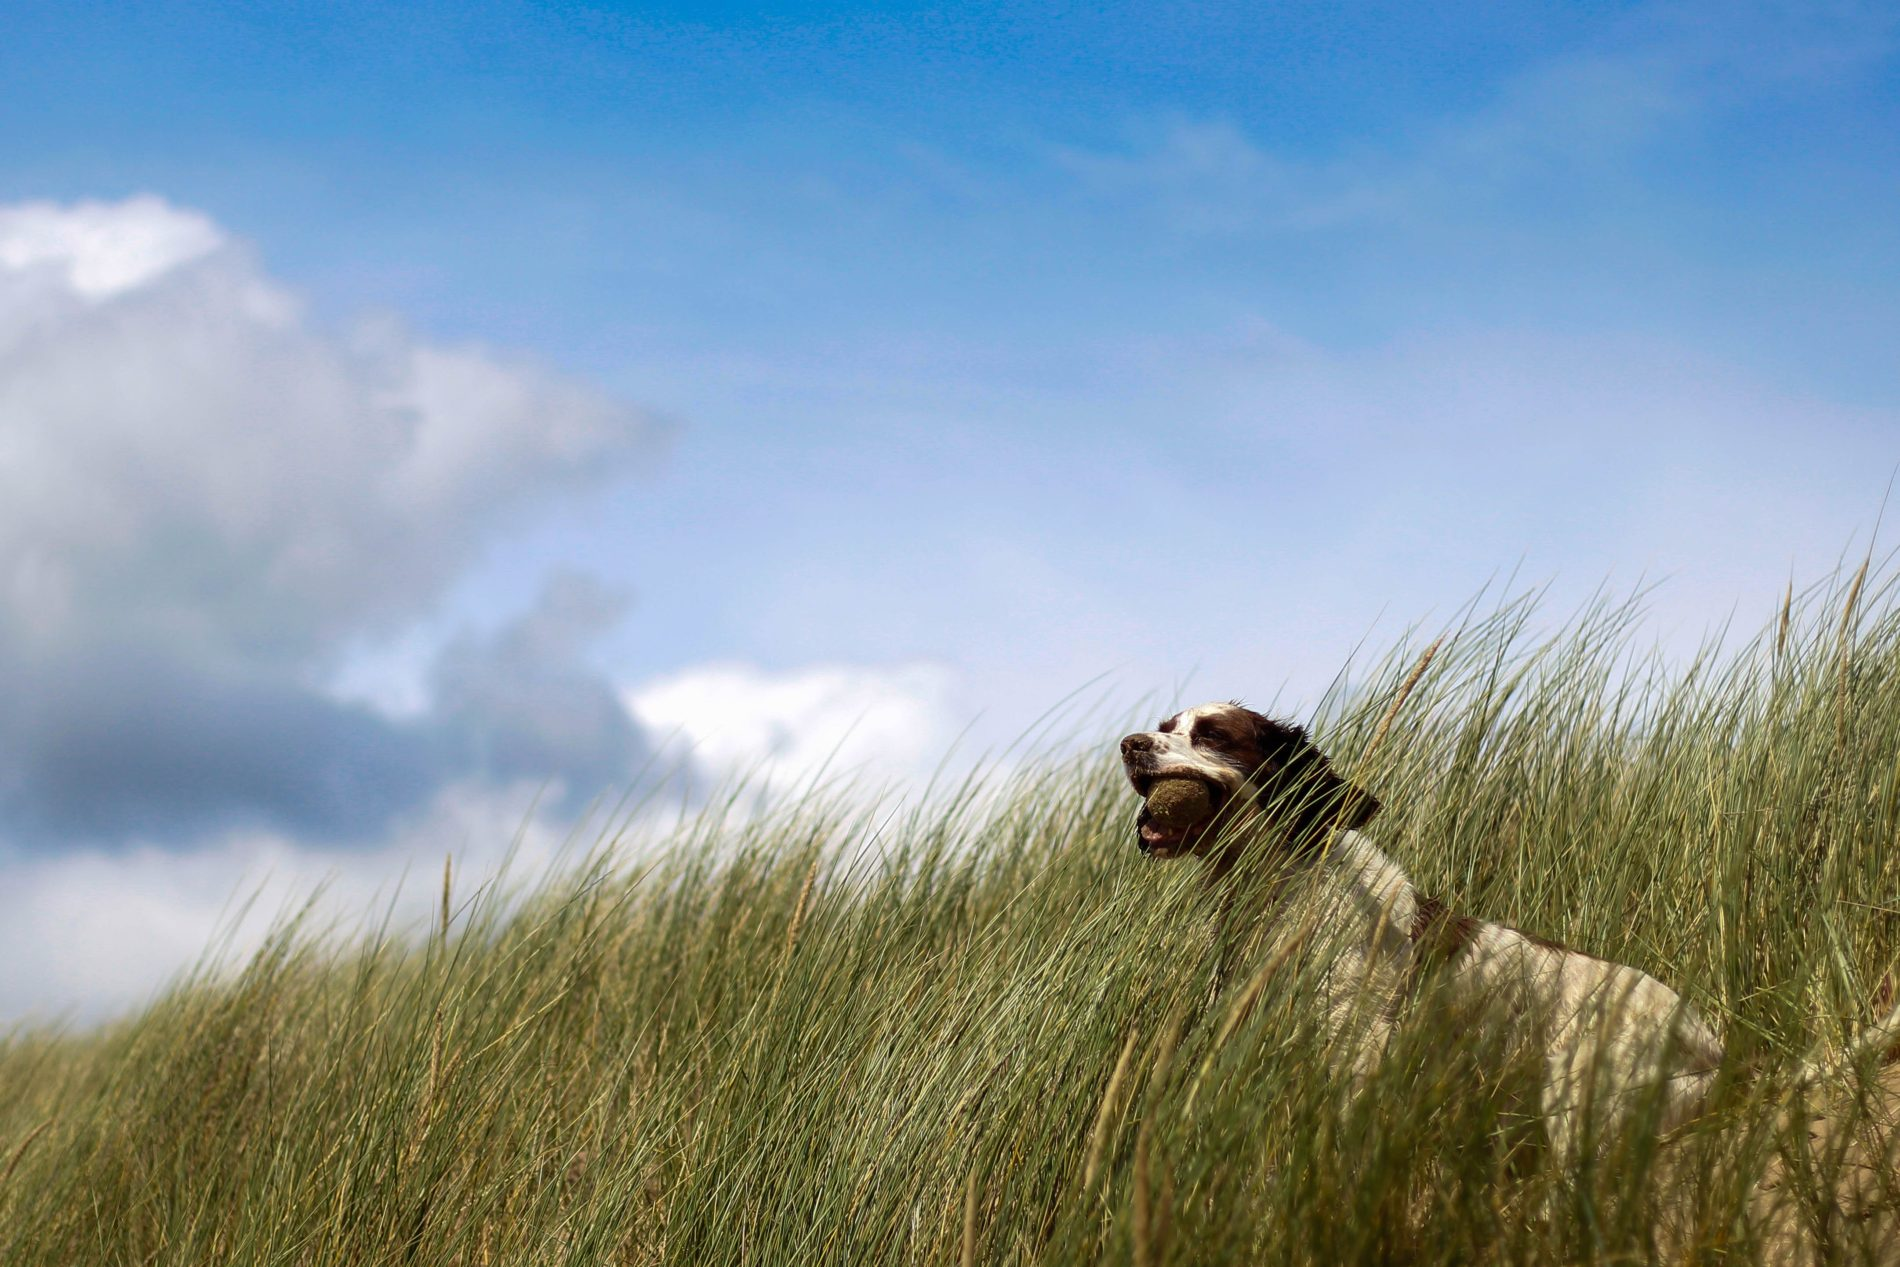 A dog with a ball in its mouth sits in high grass as the wind blows.